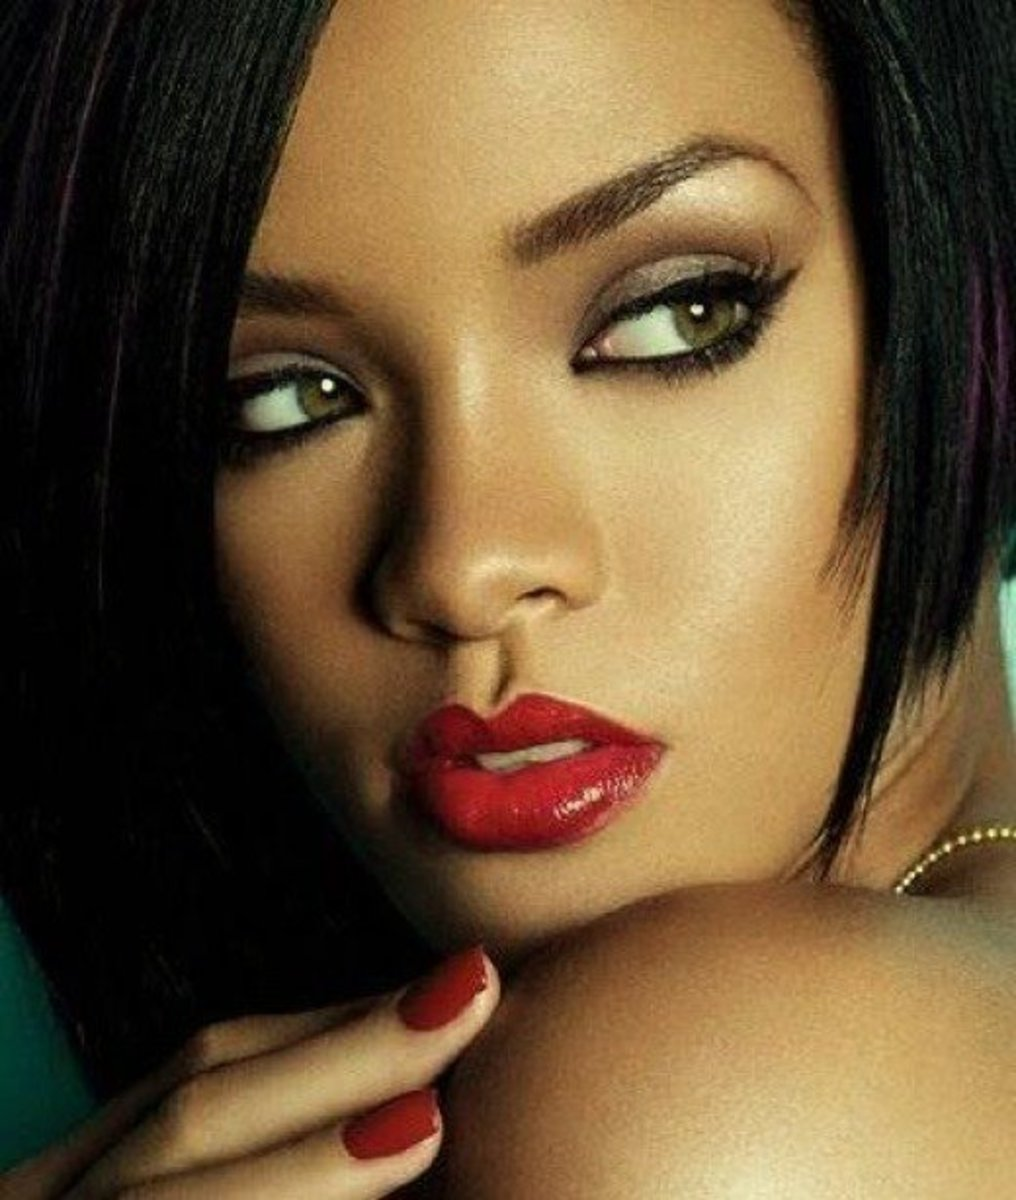 Rihanna with natural green eyes that look fabulous on her milk chocolate skin.